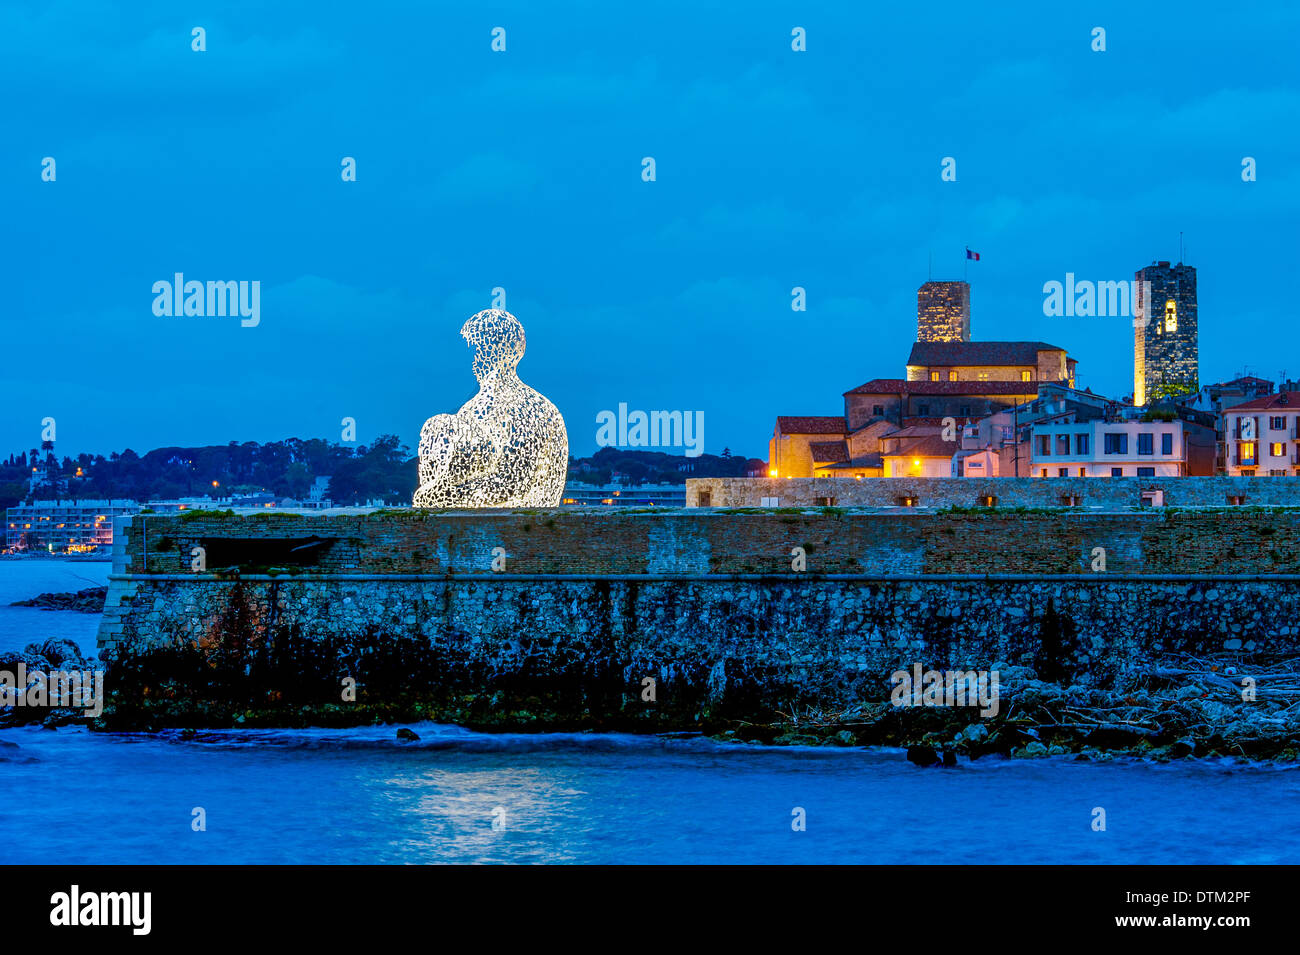 Europe, France, Alpes-Maritimes, Antibes. Old town at dusk and sculpture by Catalan artist Jaume Plensa entitled Nomad. - Stock Image